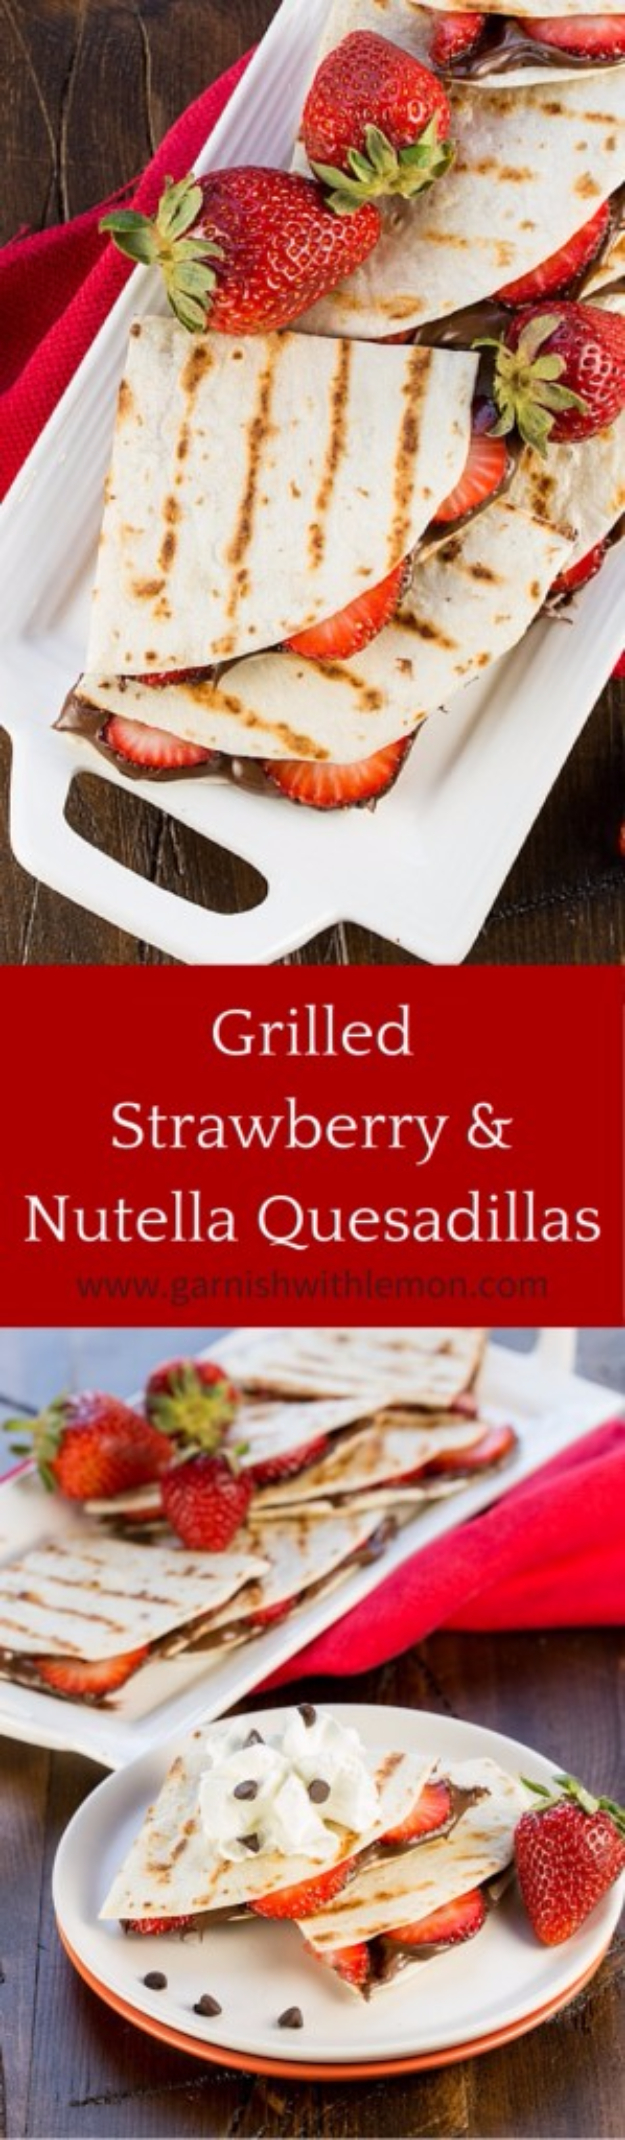 Last Minute Dessert Recipes and Ideas - Grilled Strawberry Nutella Quesadillas - Healthy and Easy Ideas for No Bake Recipe Foods, Chocolate, Peanut Butter. Best Simple Ideas for Summer, For A Crowd and for Parties